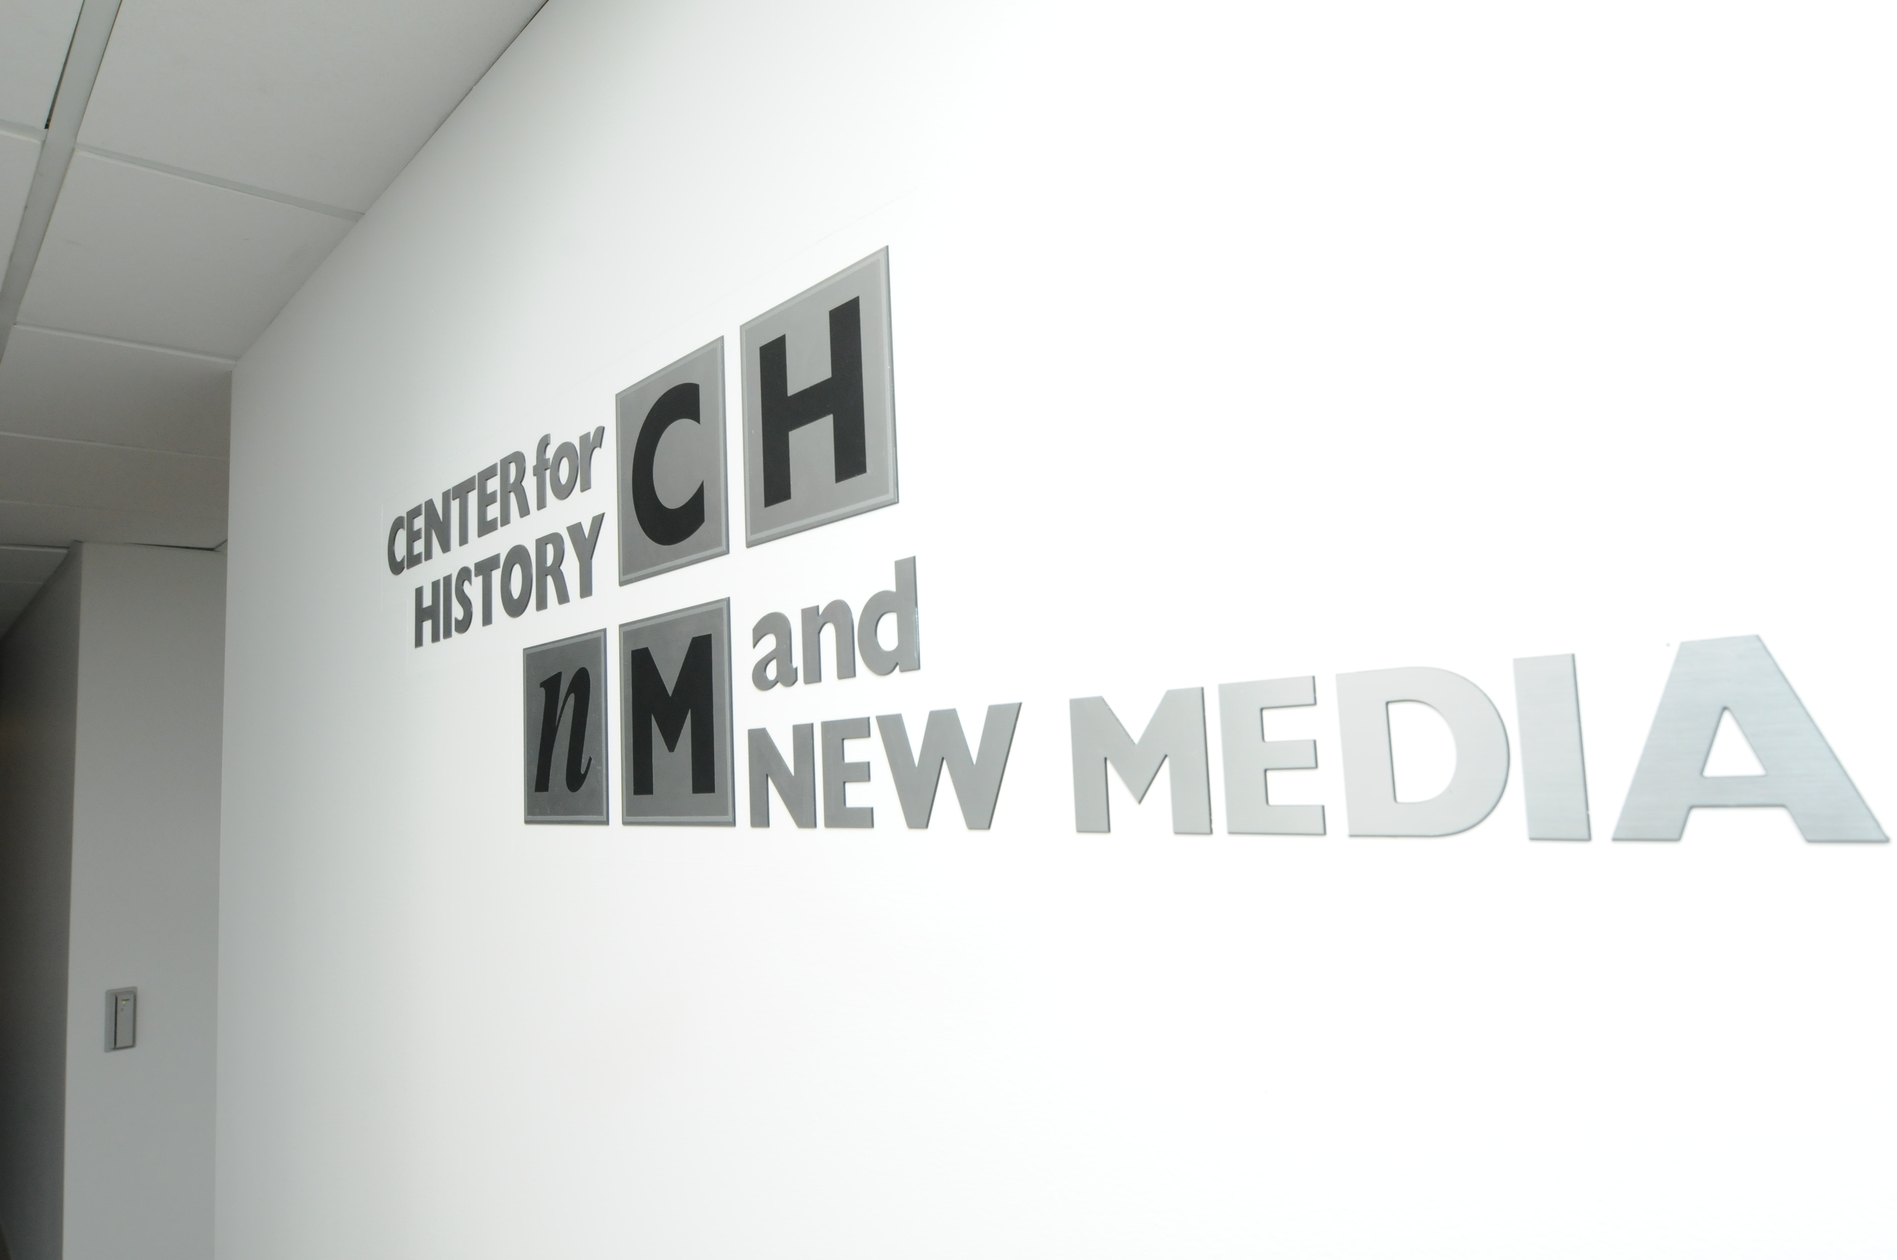 Roy Rosenzweig Center for History and New Media Grows into its Next 25 Years